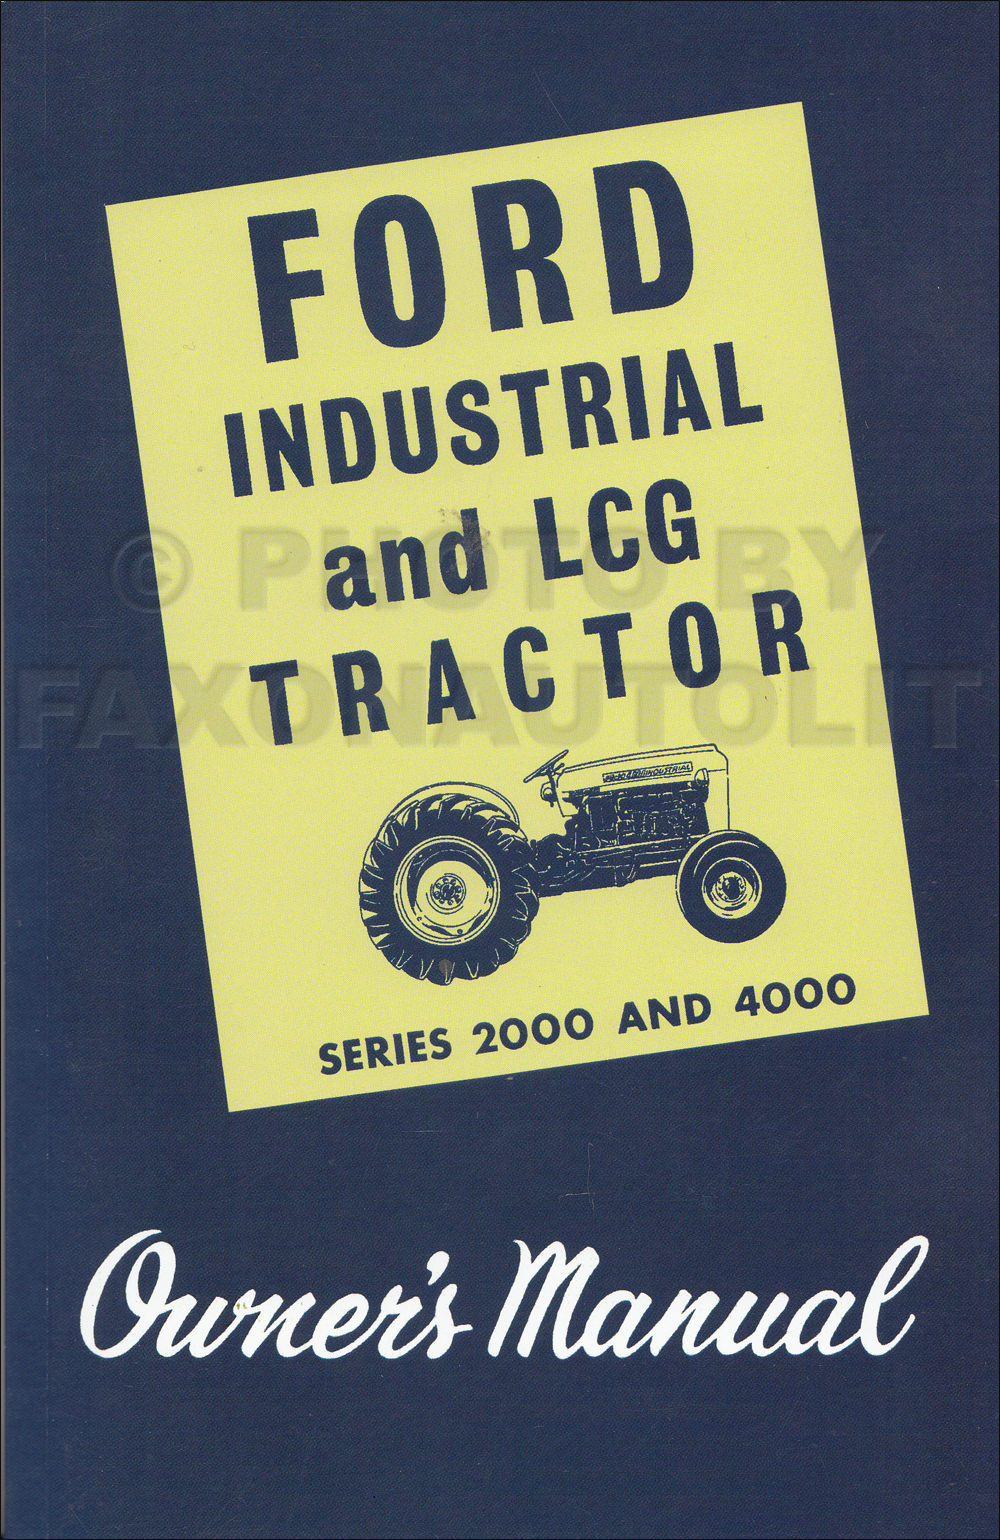 1962-1964 Ford 2000 4000 Industrial and LCG Tractor Owner's Handbook Reprint